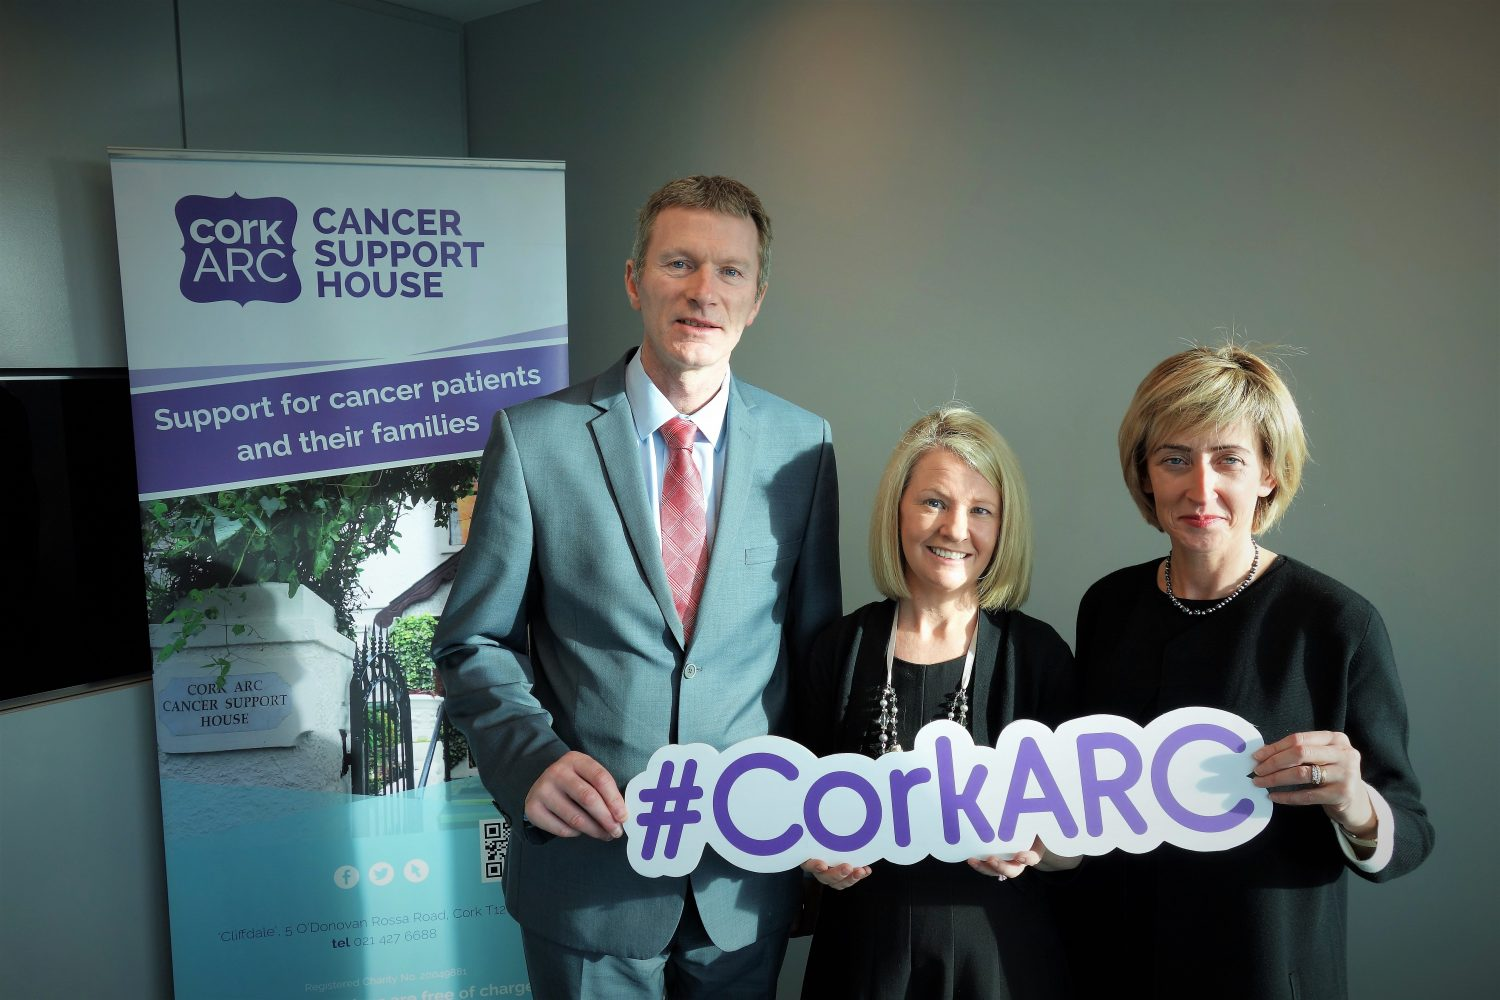 4th February: Crowleys DFK & Cork ARC's Charity Partnership is launched on World Cancer Day!